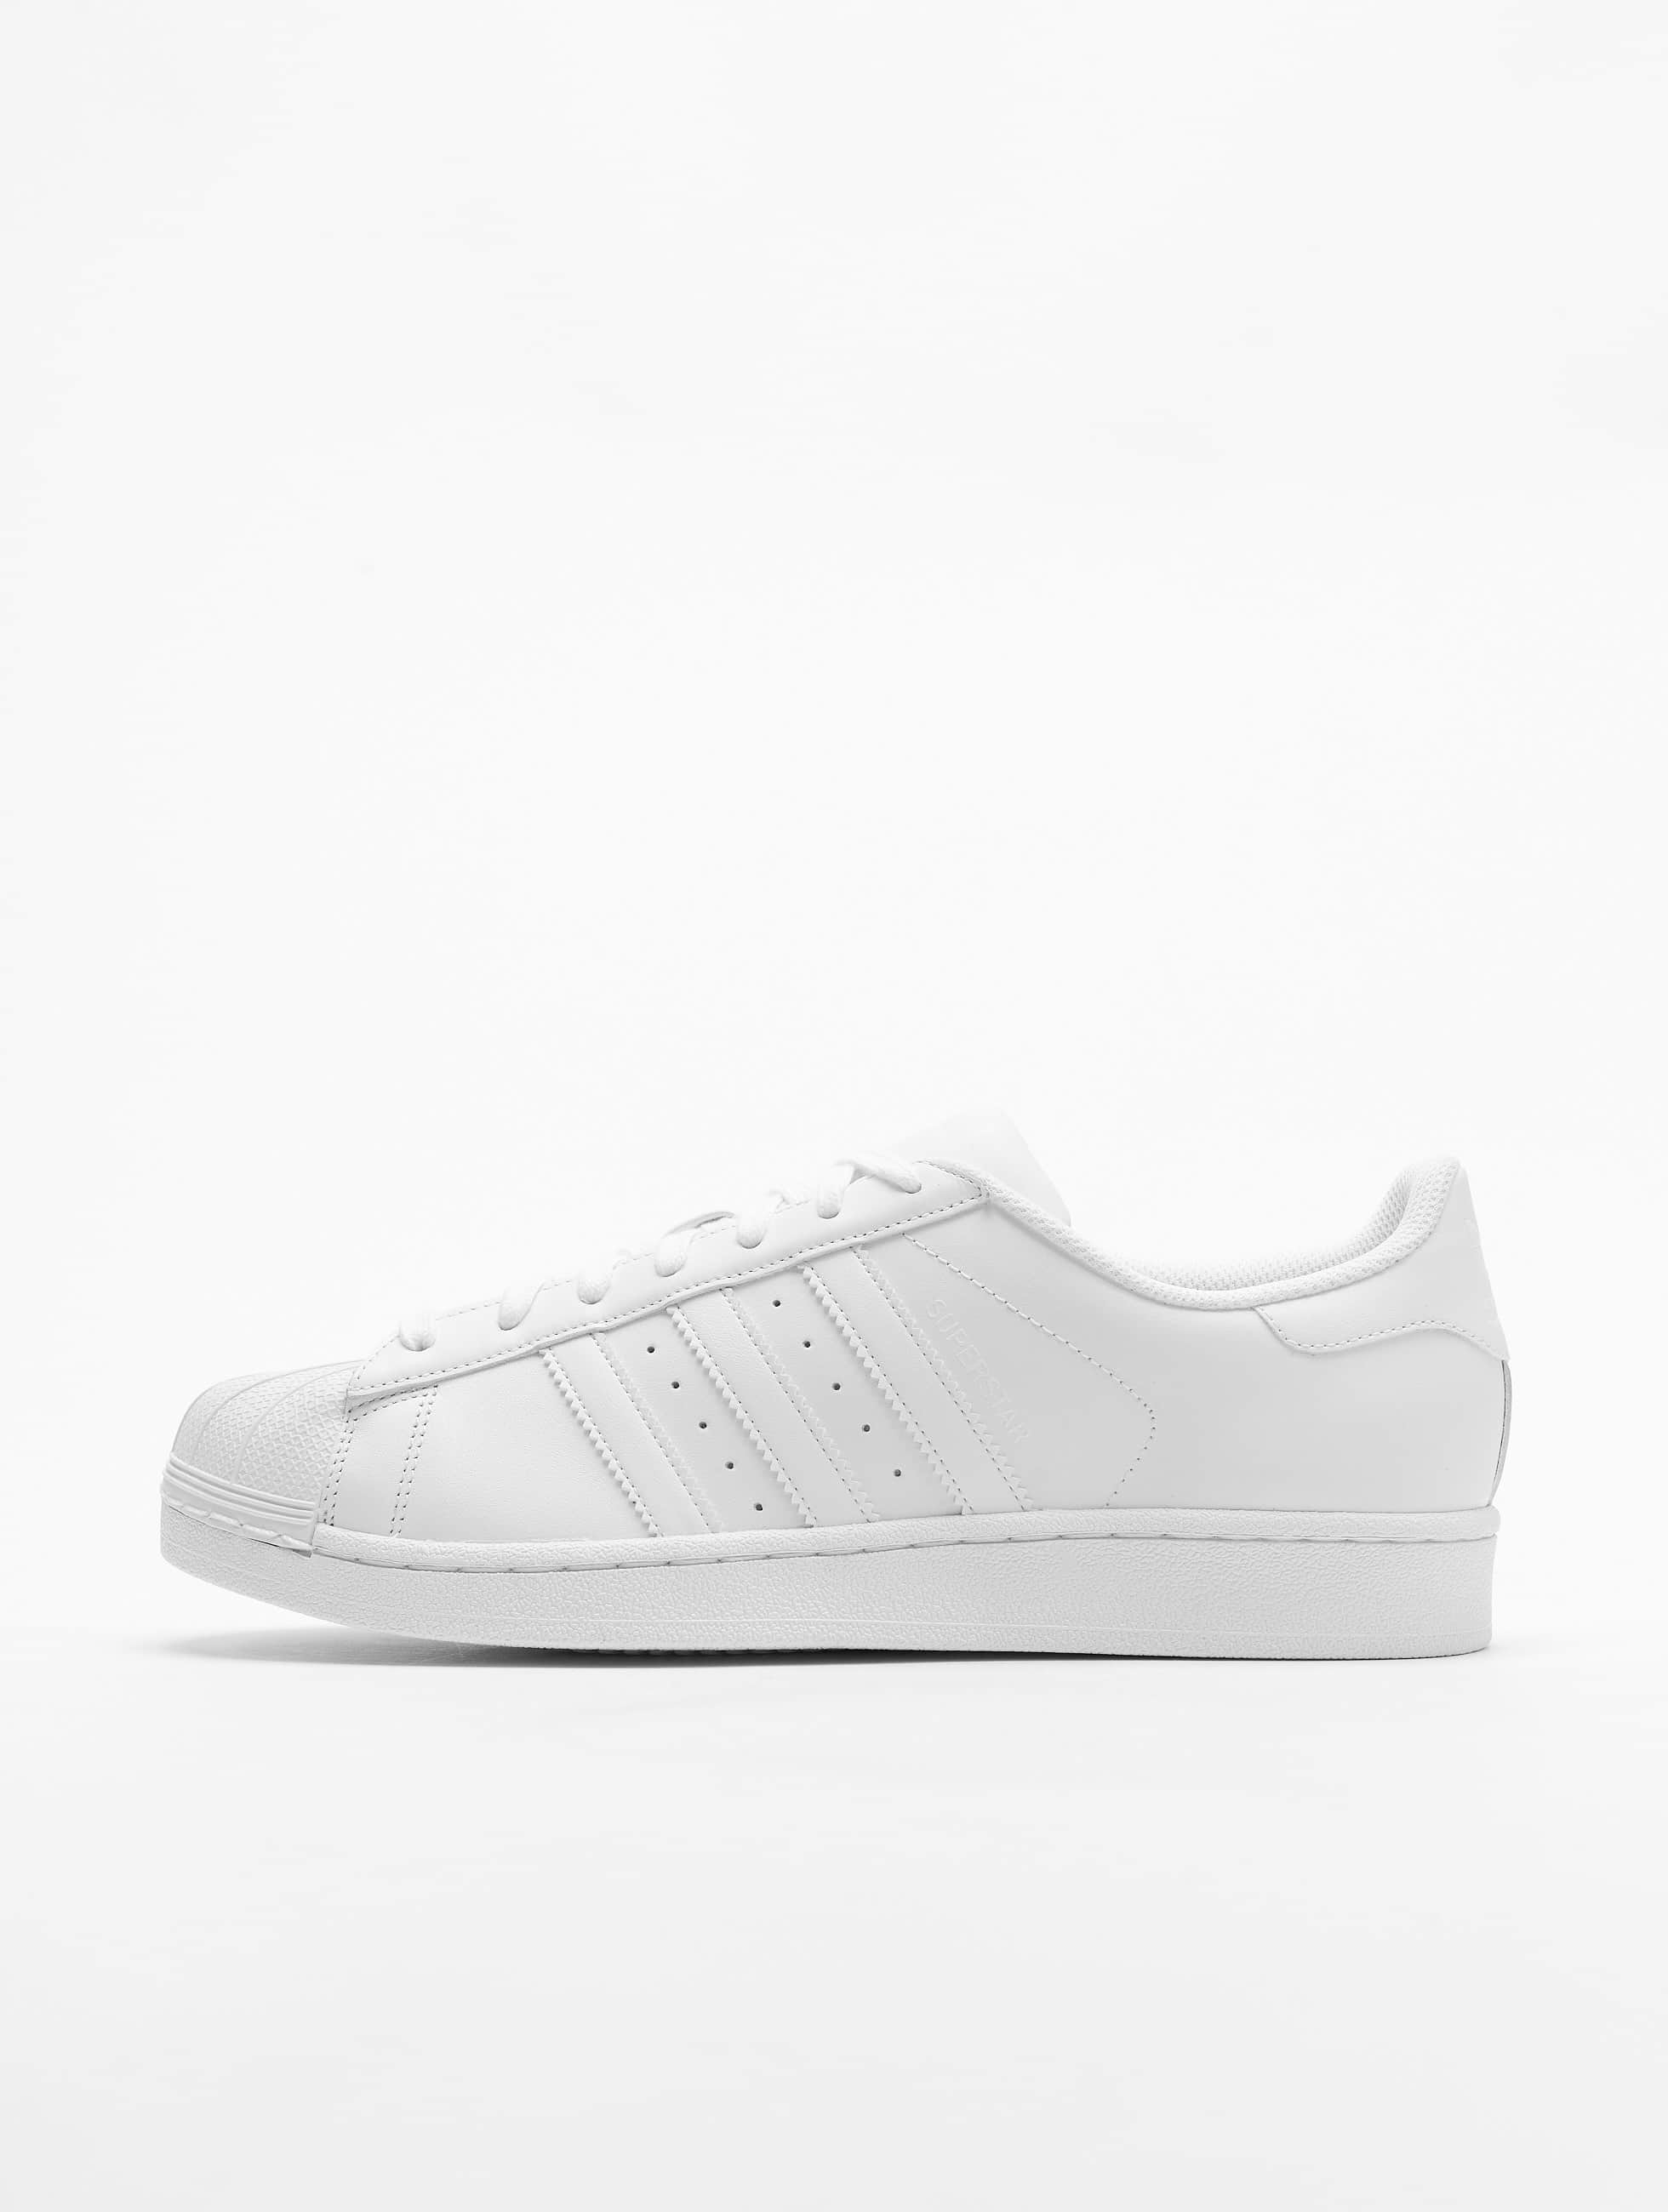 Adidas Sneakers Wit Dames